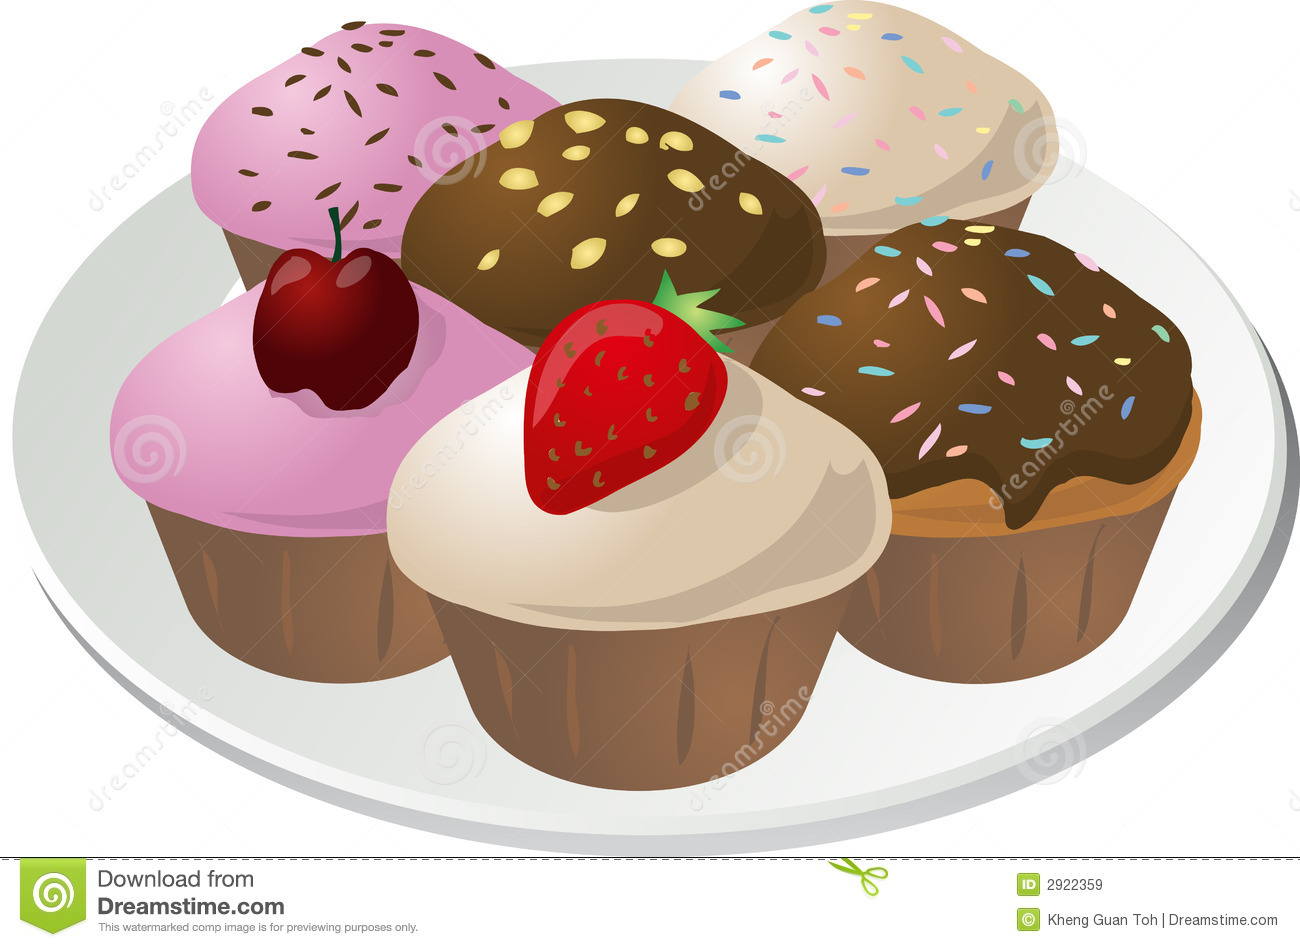 cupcakes on plate royalty free stock images image 2922359 Microsoft Free Clip Art Downloads Microsoft Free Clip Art Downloads